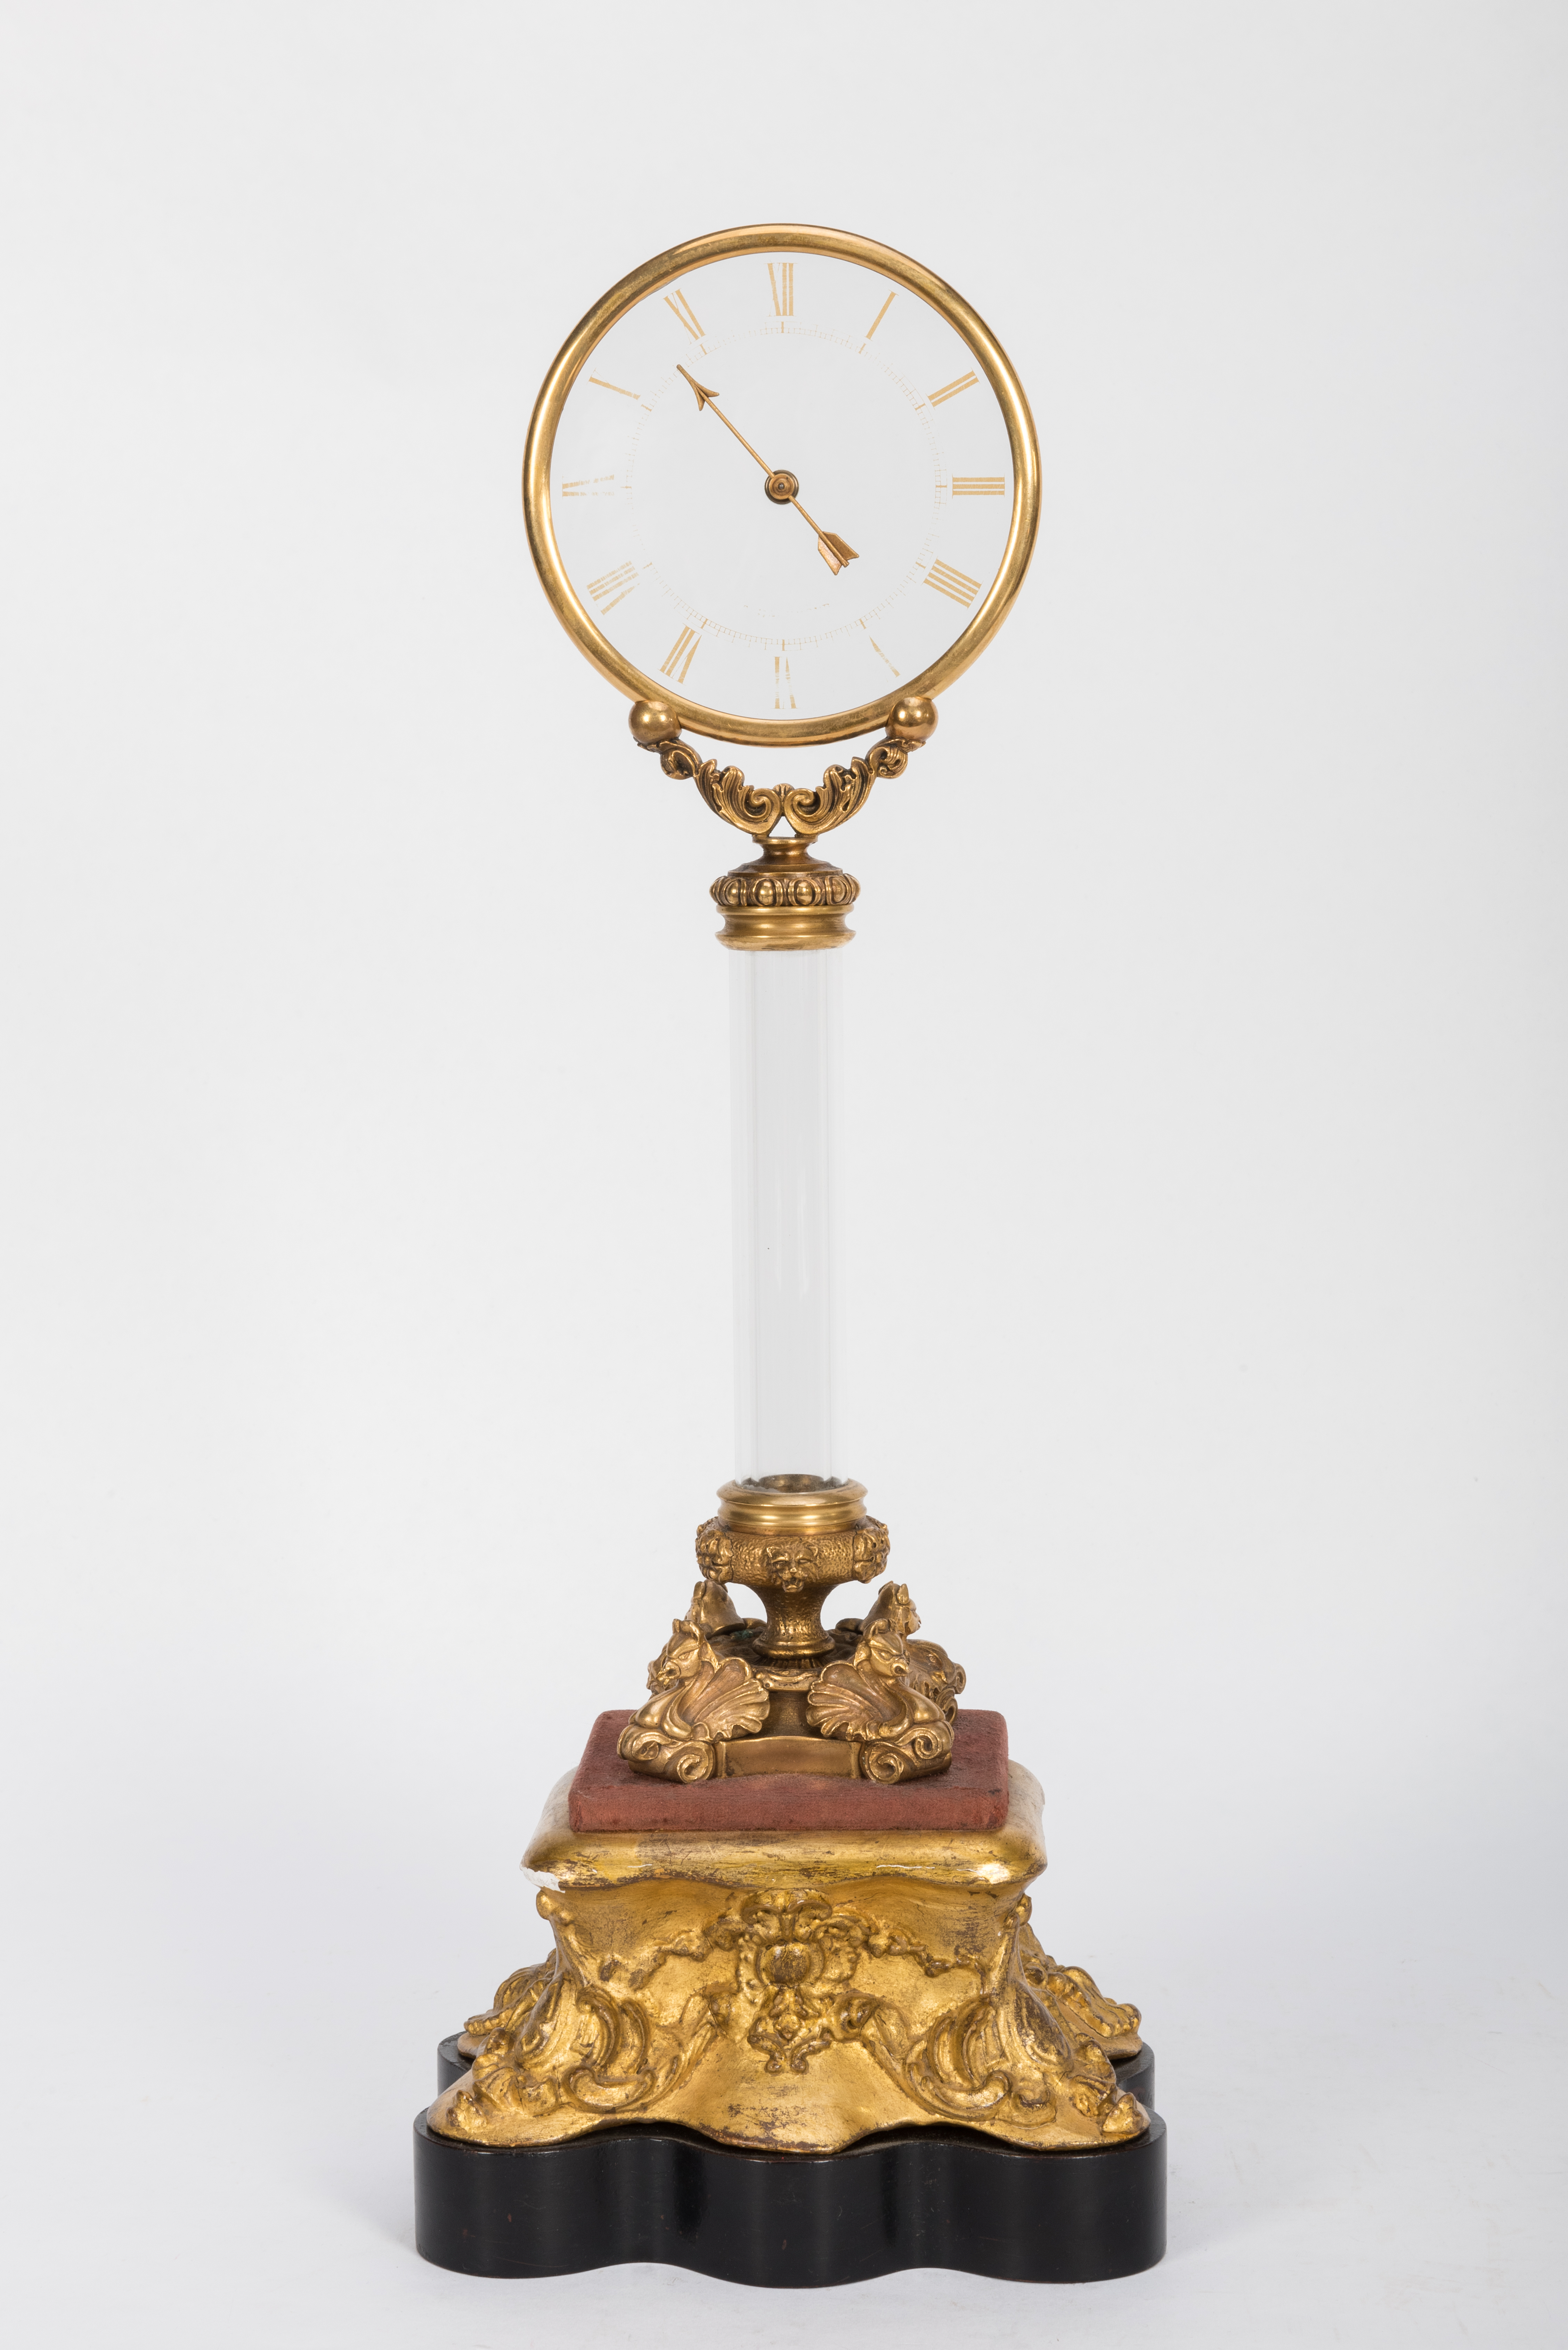 A mid-nineteenth century glass column mystery clock by Jean Eugène Robert-Houdin.